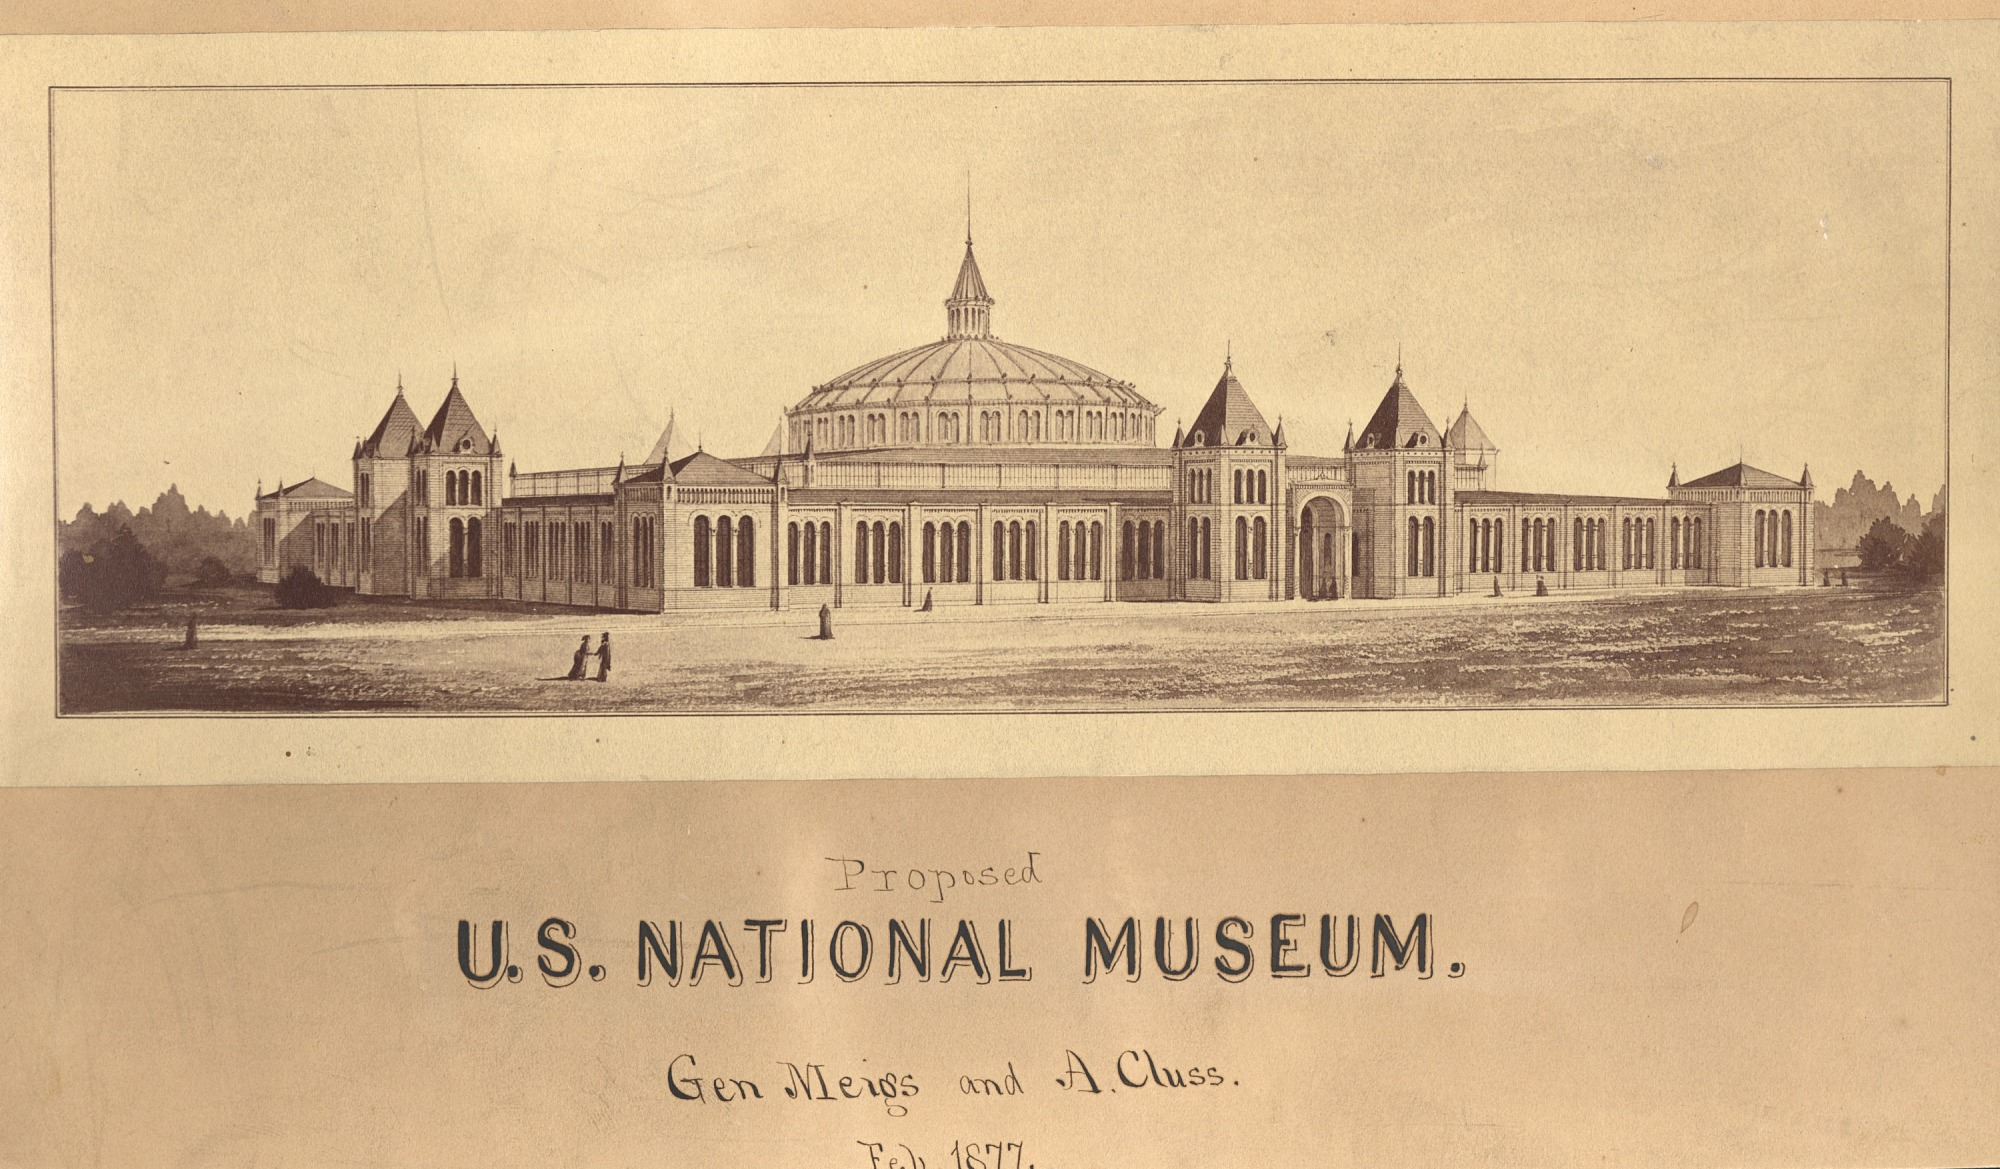 Preliminary Drawing by Cluss & Meigs of United States National Museum